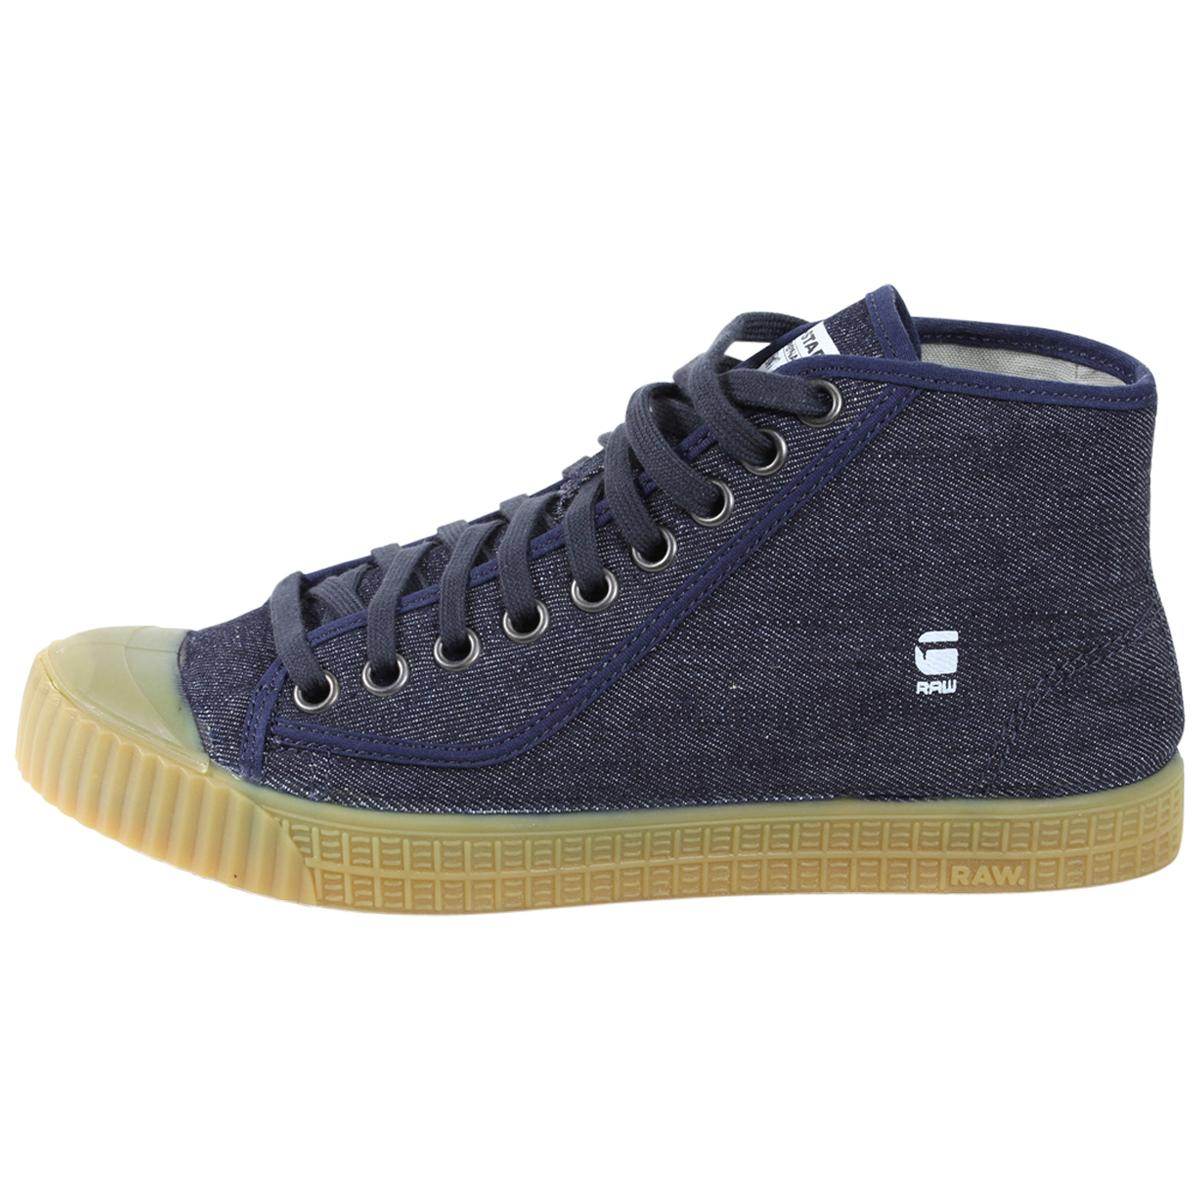 Mens Rovulc Roel Mid Low-Top Sneakers G-Star A90lm